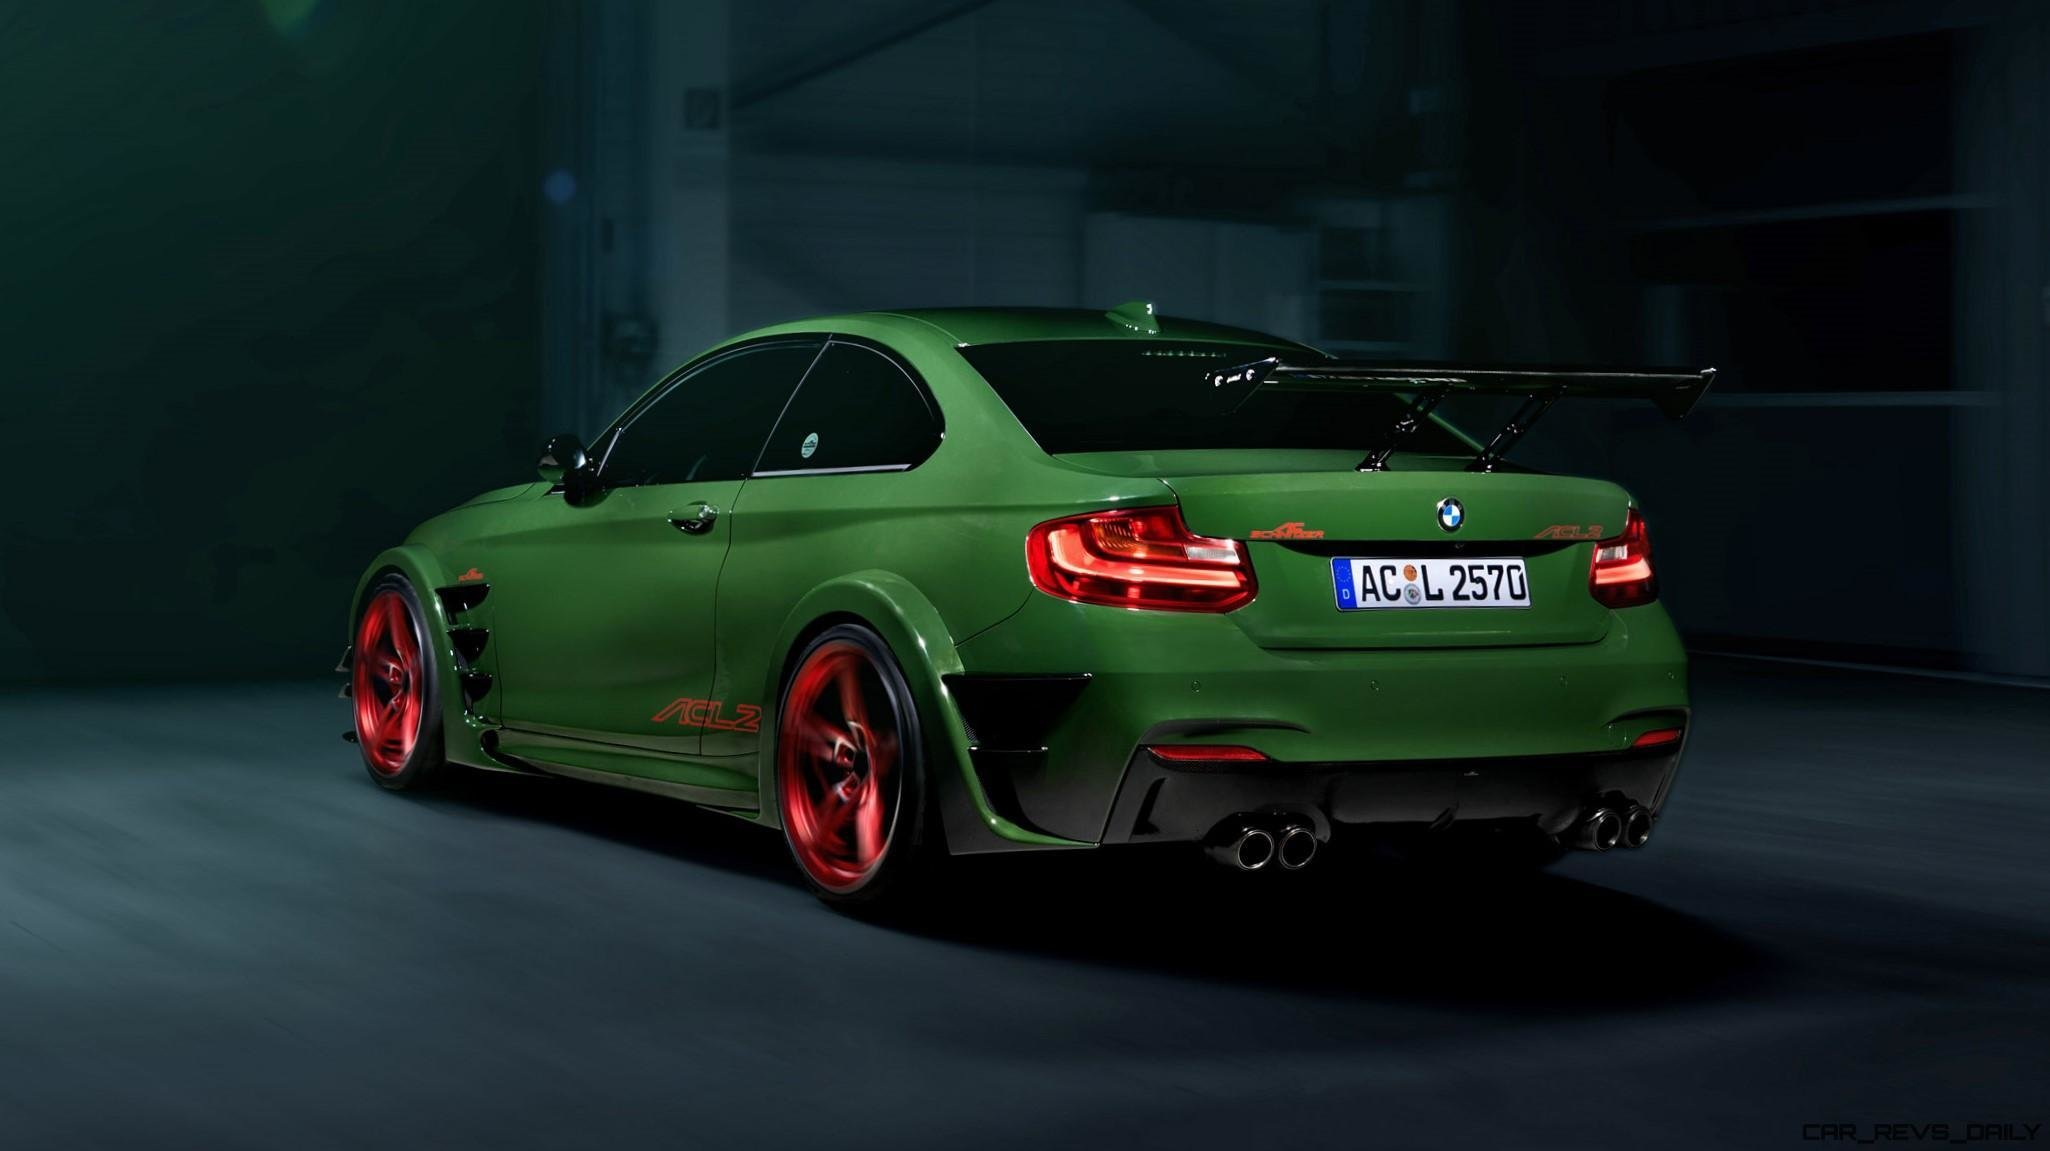 Latest Maus Panzer Acl2 By Ac Schnitzer Is 570Hp 3 8S Bmw M235I Free Download